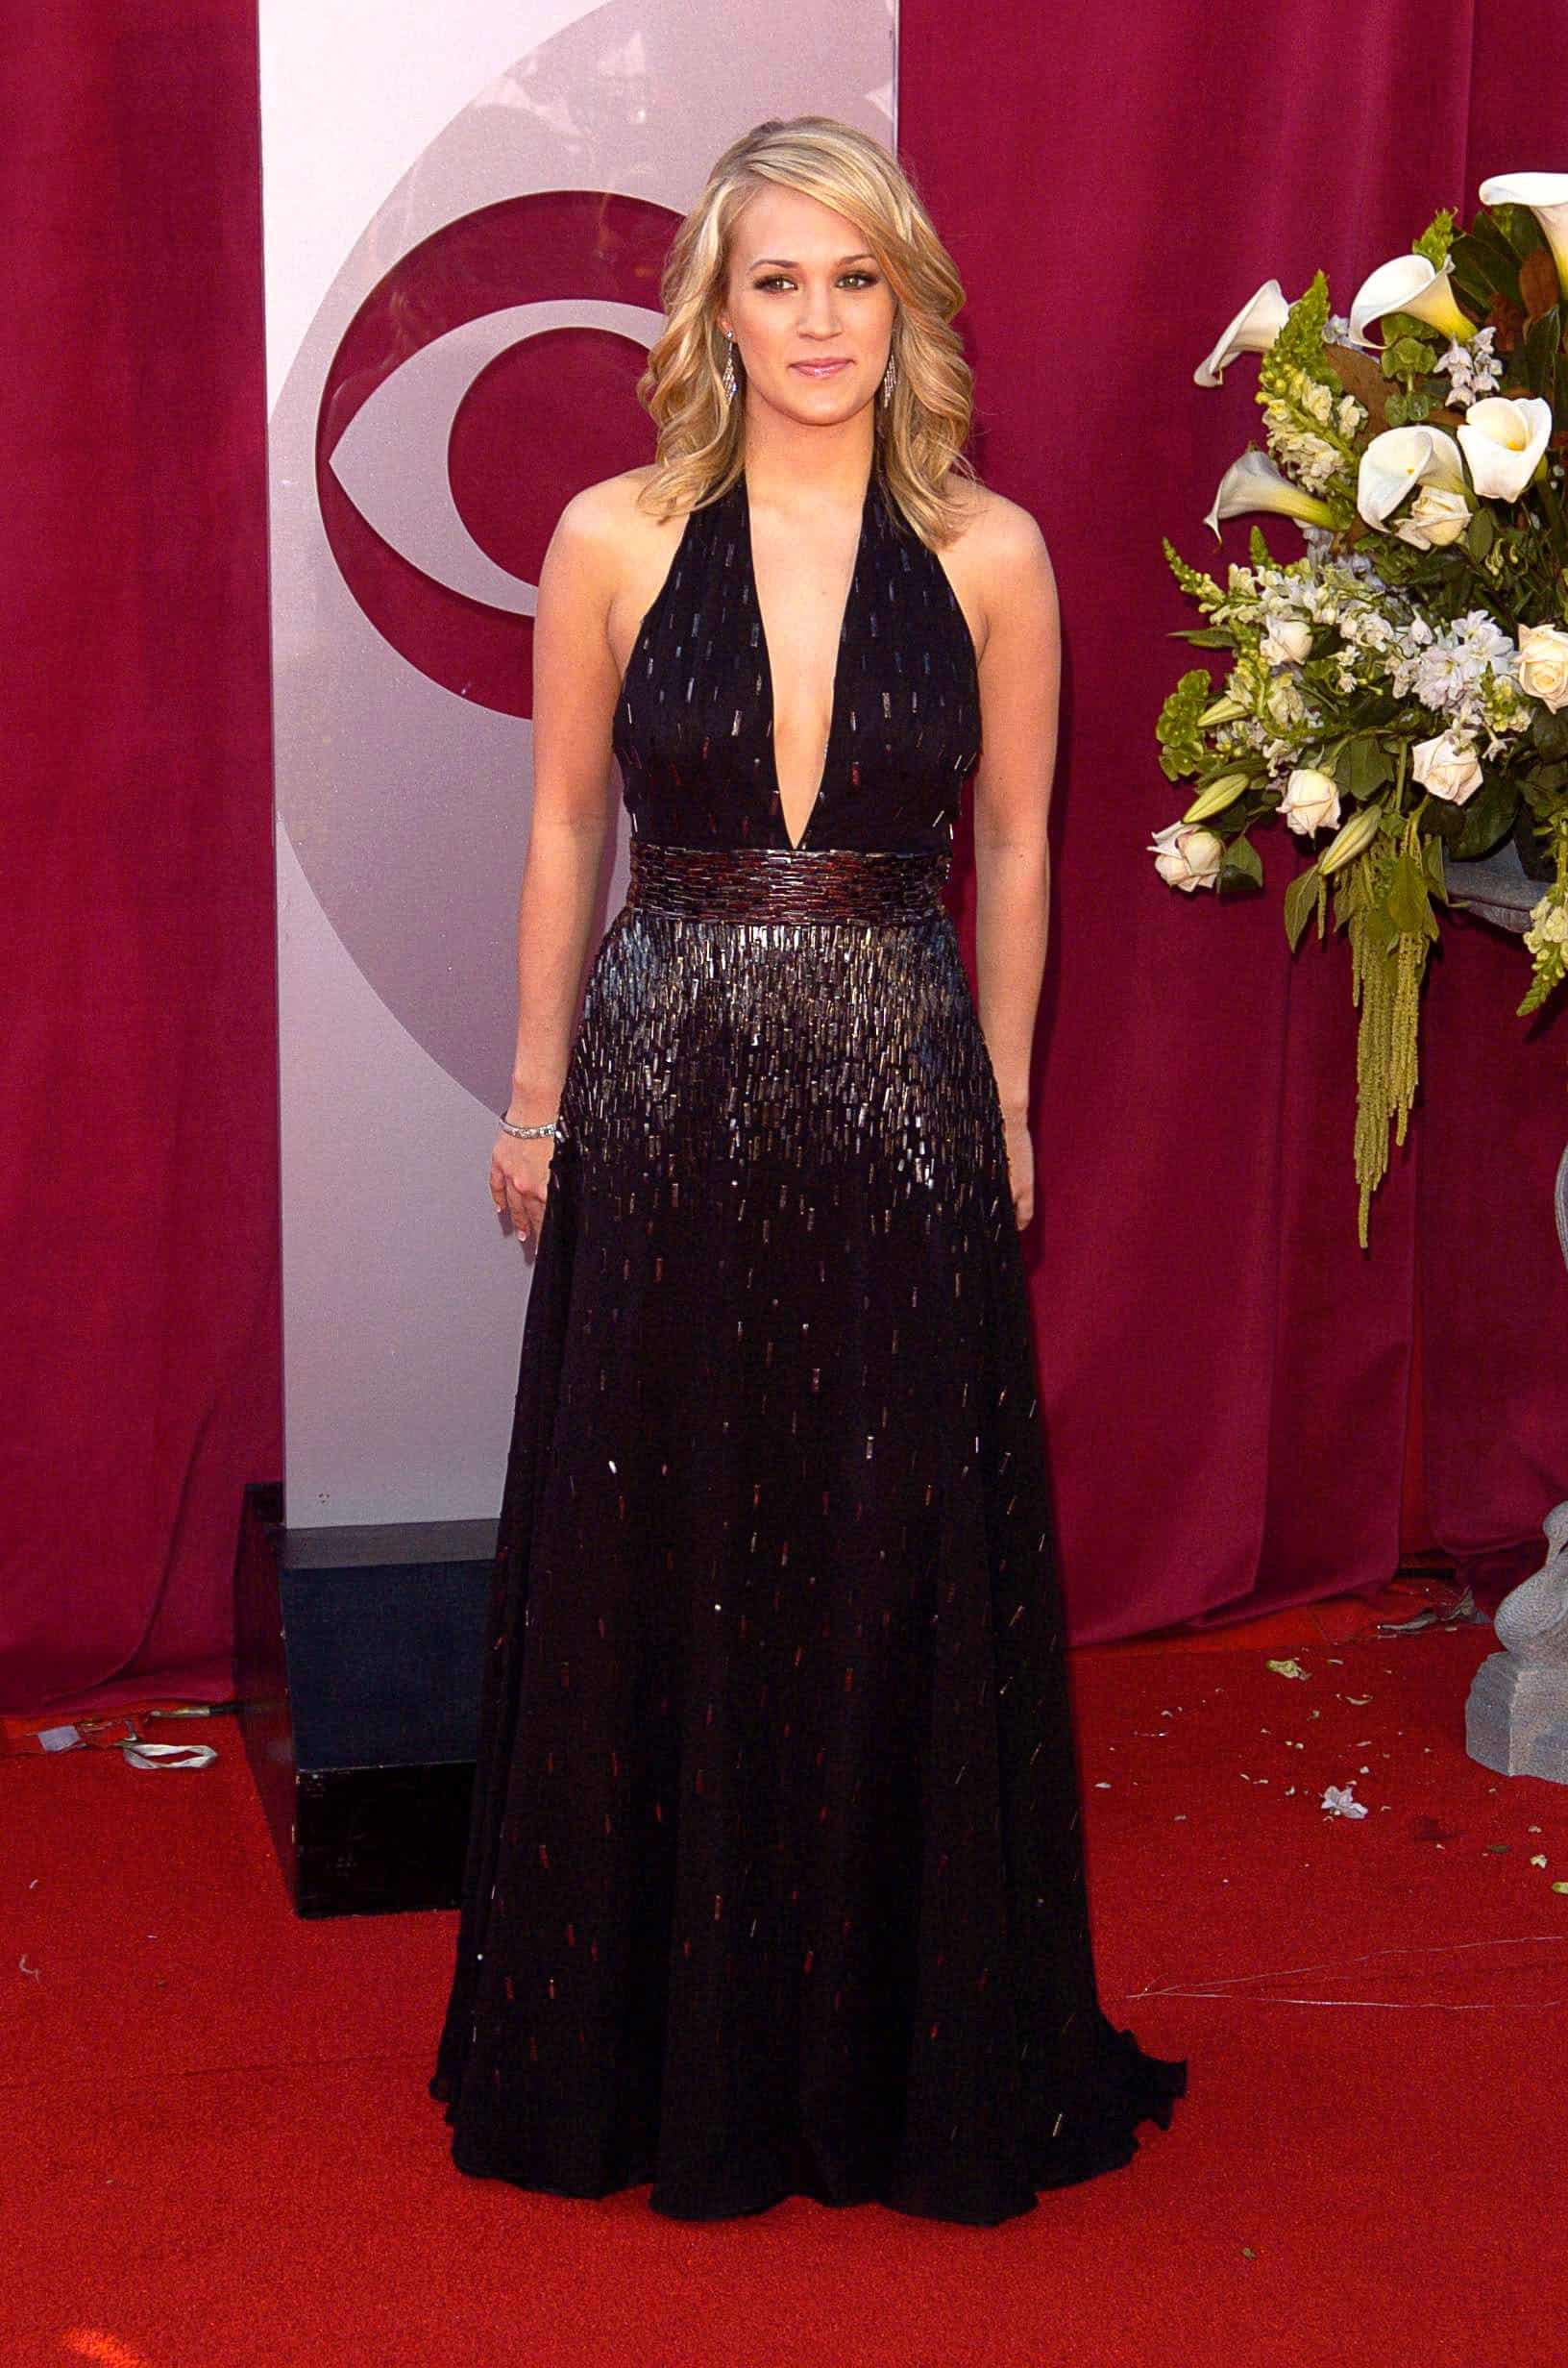 Brittany Snow attended the PETA 25th Anniversary Gala and Awards, Paramount Pictures Studios in Los Angeles, CA on September 10, 2005. She paired her simple black dress with a curly blonde low ponytail hairstyle that has loose bangs.